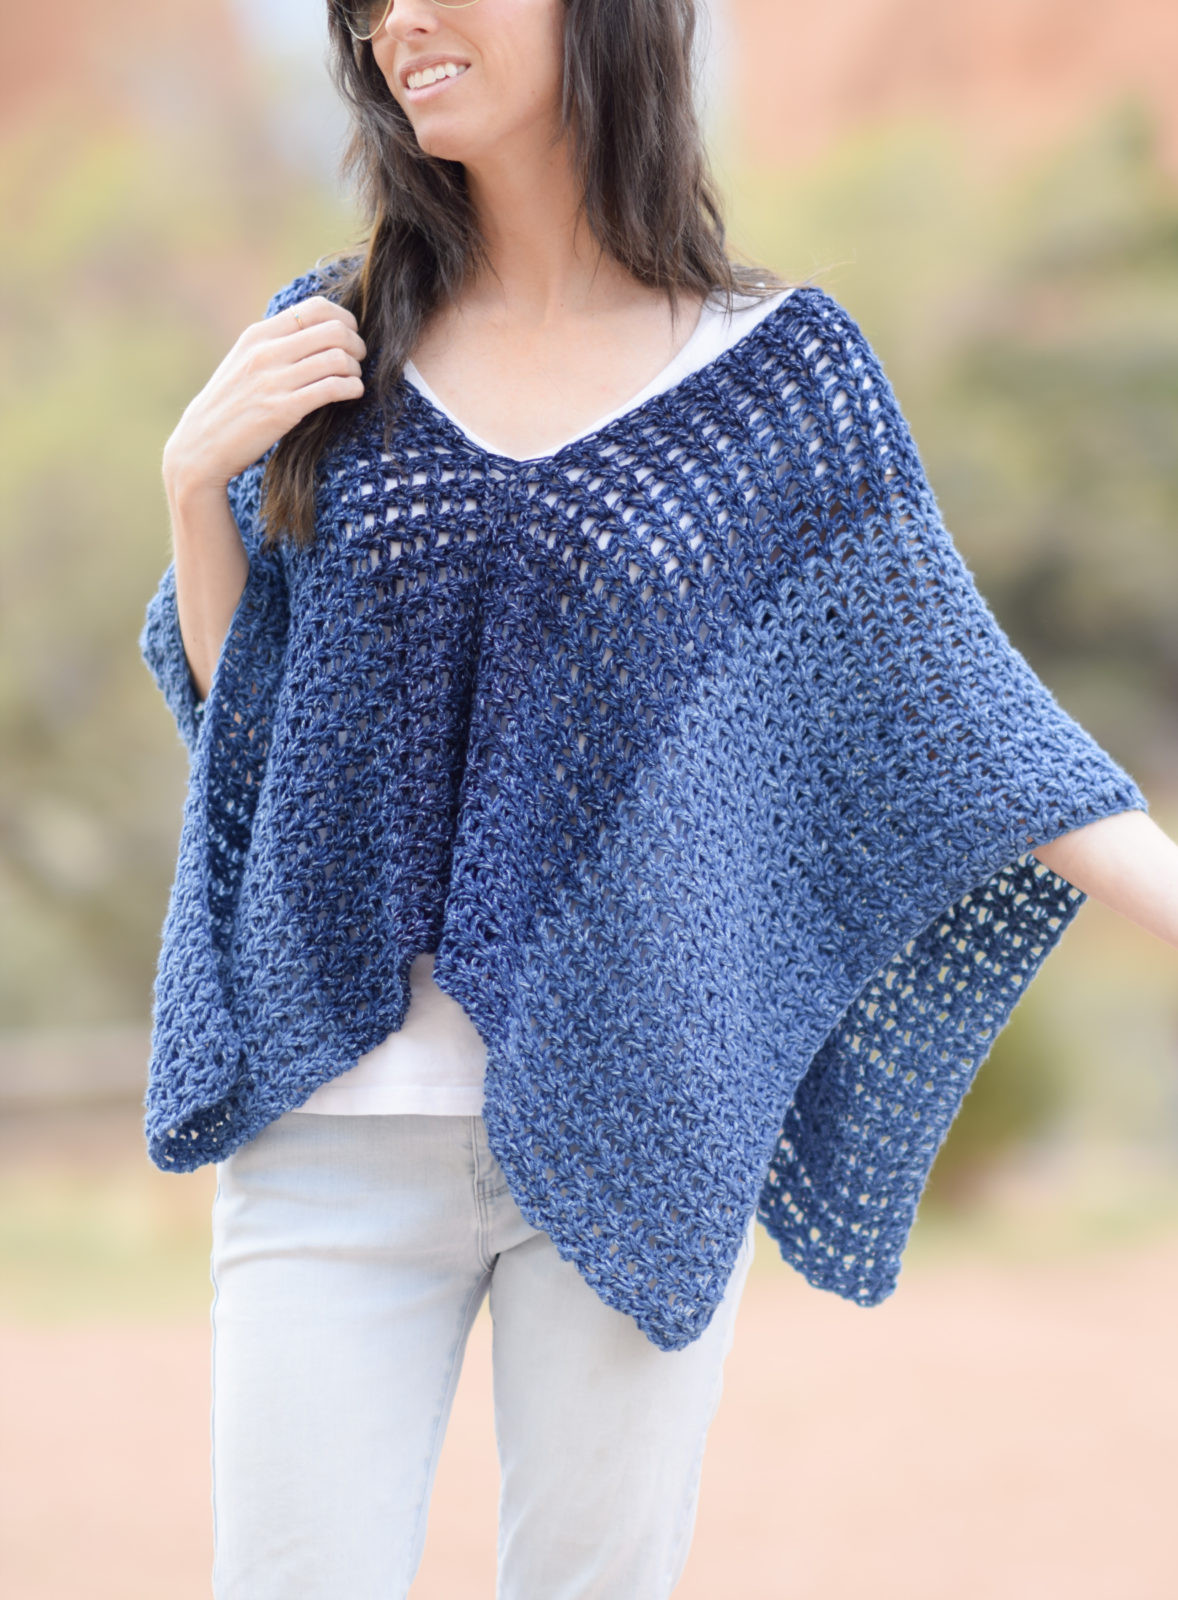 Crochet Poncho Pattern Awesome Azul V Mesh Easy Crochet Poncho Pattern – Mama In A Stitch Of Beautiful 41 Ideas Crochet Poncho Pattern